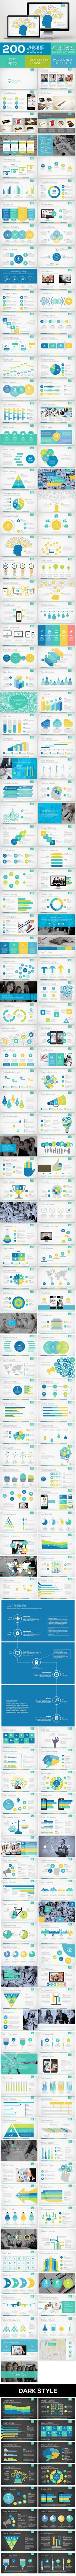 Akuntansi Powerpoint PowerPoint Template / Theme / Presentation / Slides / Background / Power Point #powerpoint #template #theme